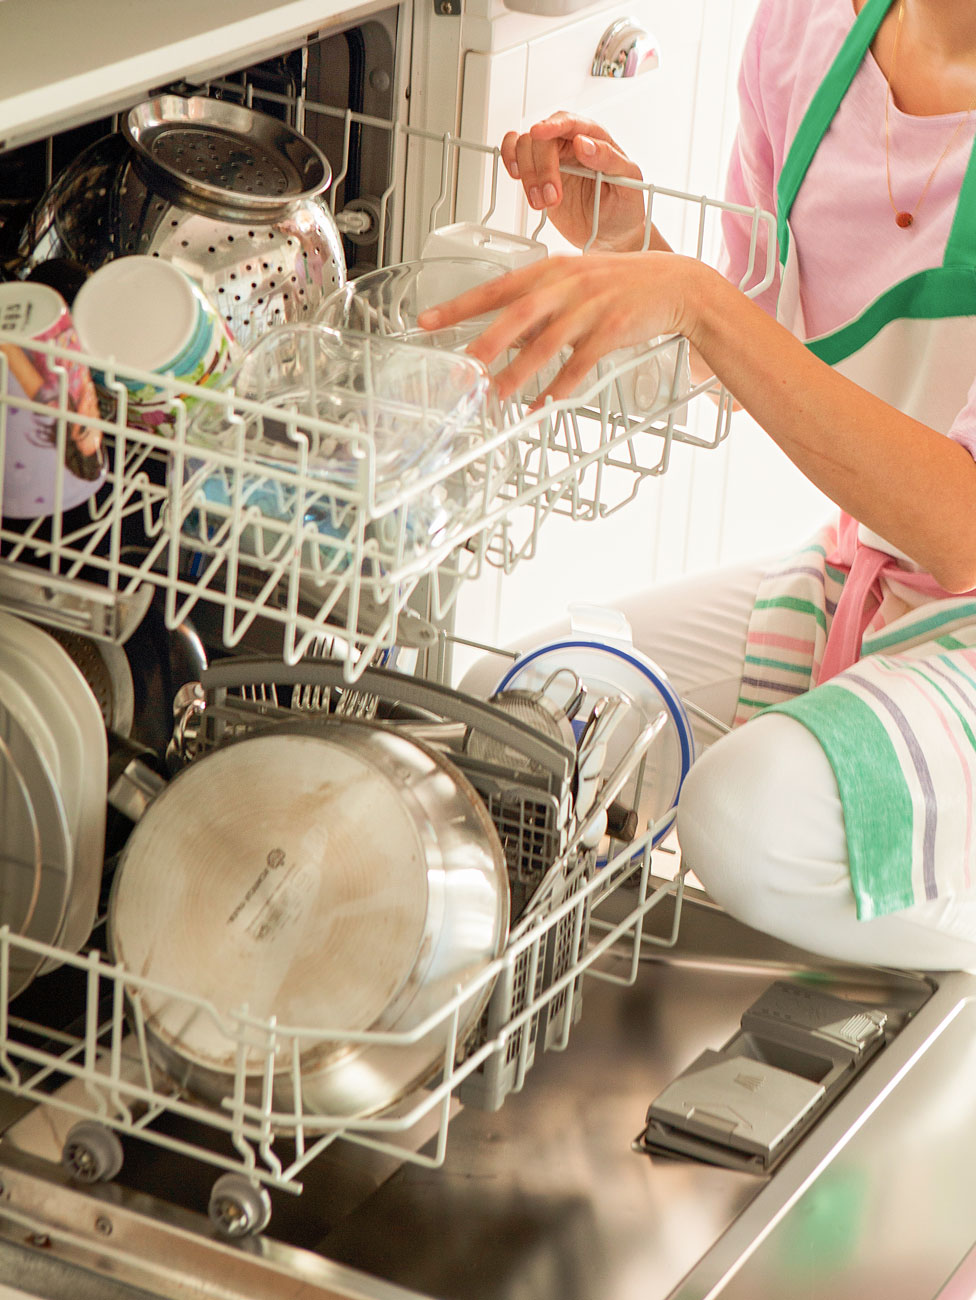 43.-Eliminate-bad-smell-dishwasher 418226